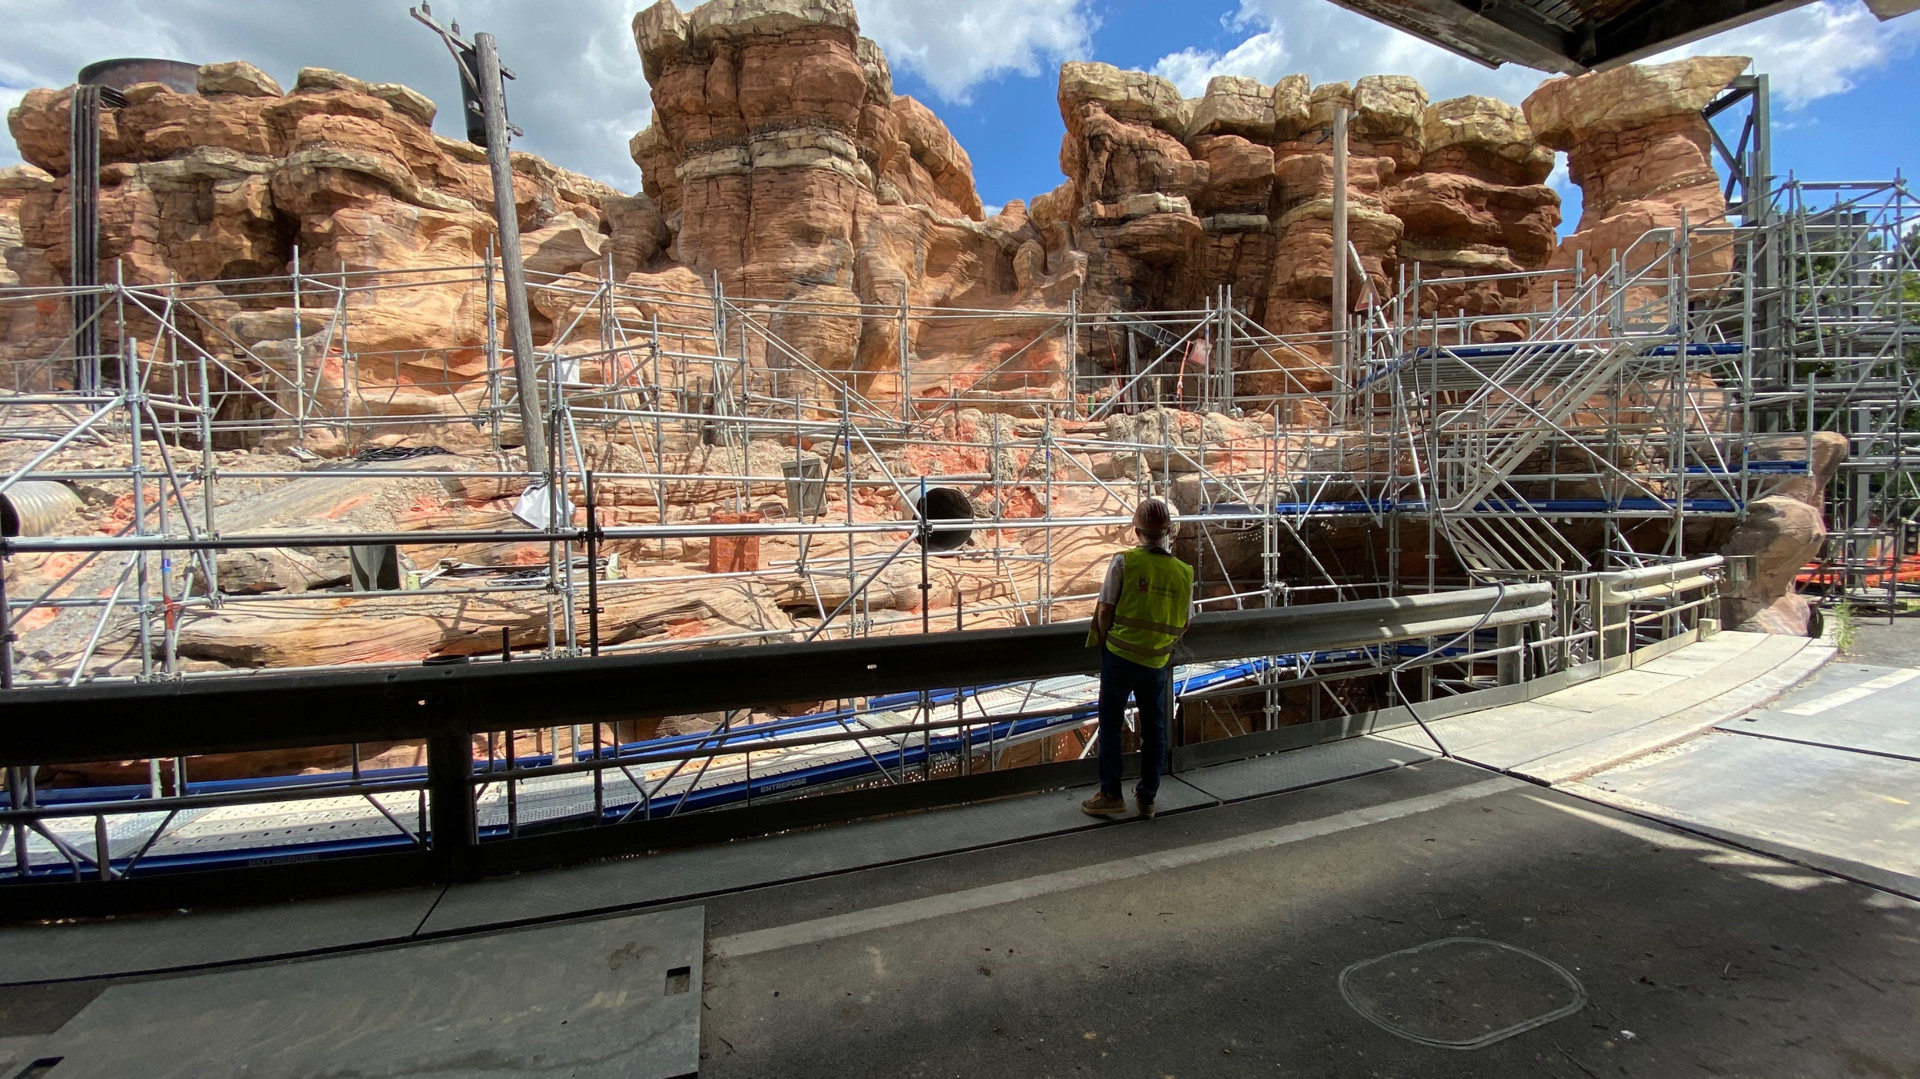 Construction work on Cars: Route 66 Road Trip's reimagining of Catastrophe Canyon